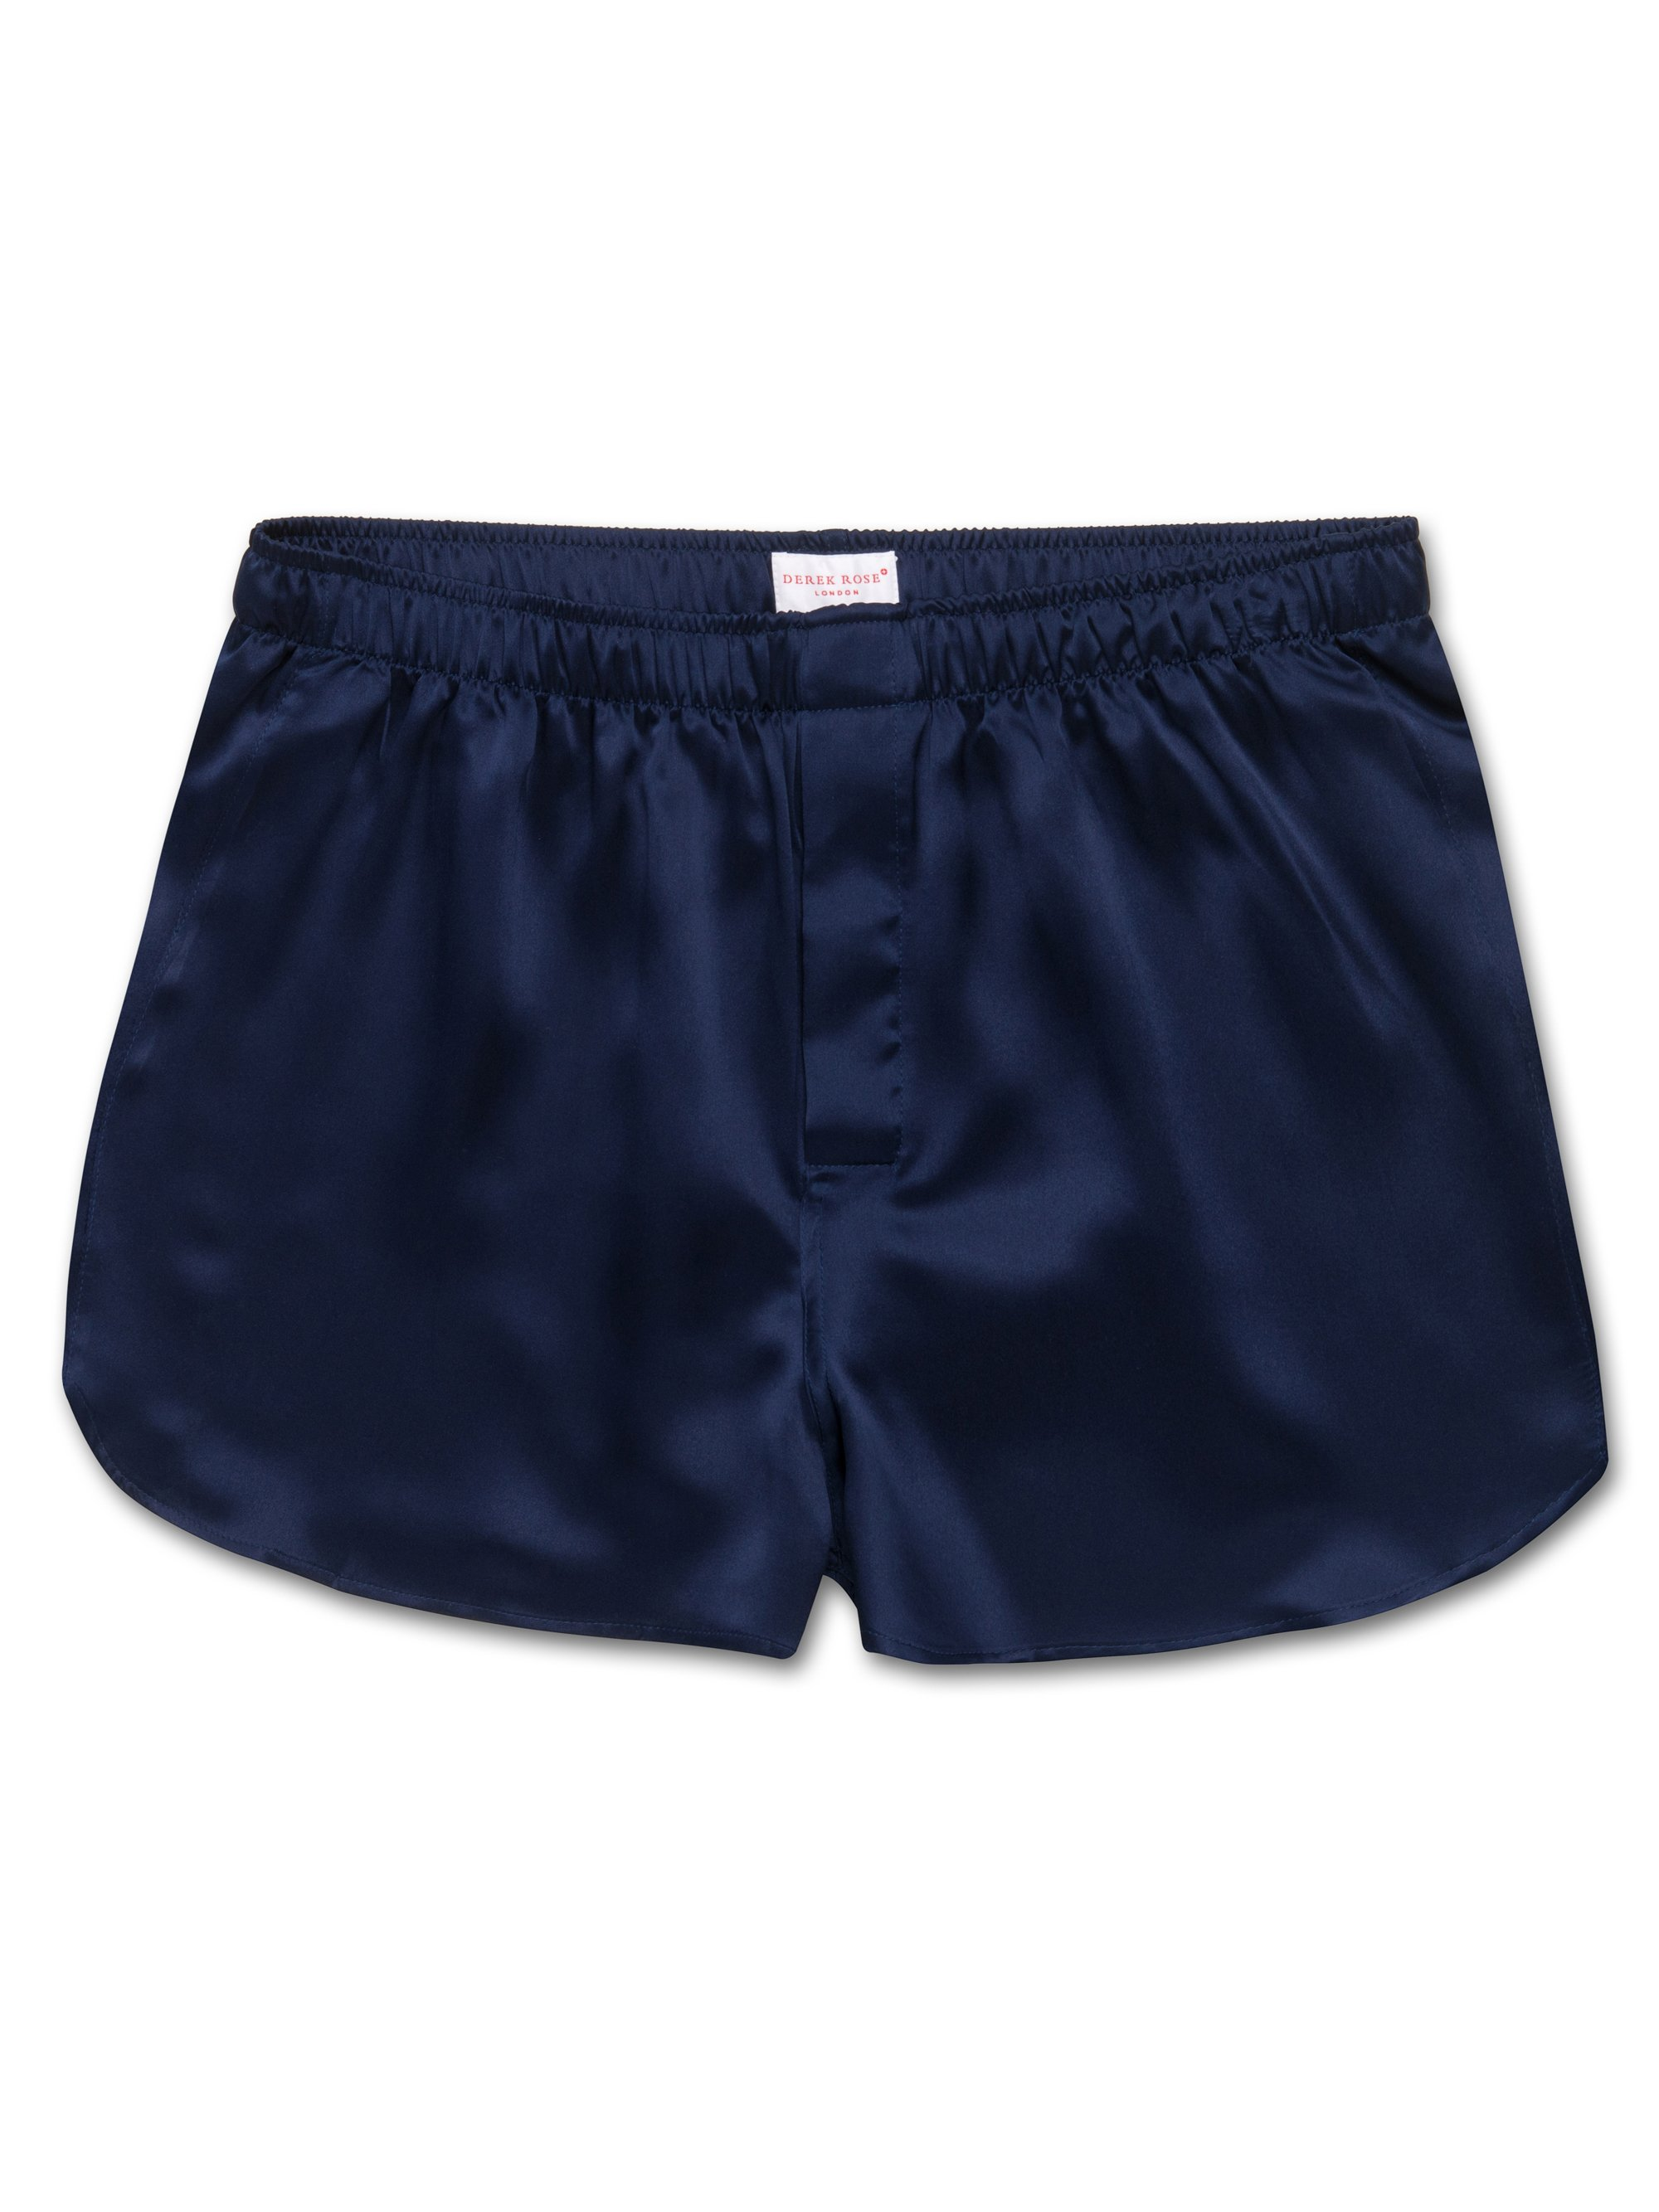 Men's Modern Fit Boxer Shorts Bailey Pure Silk Satin Navy